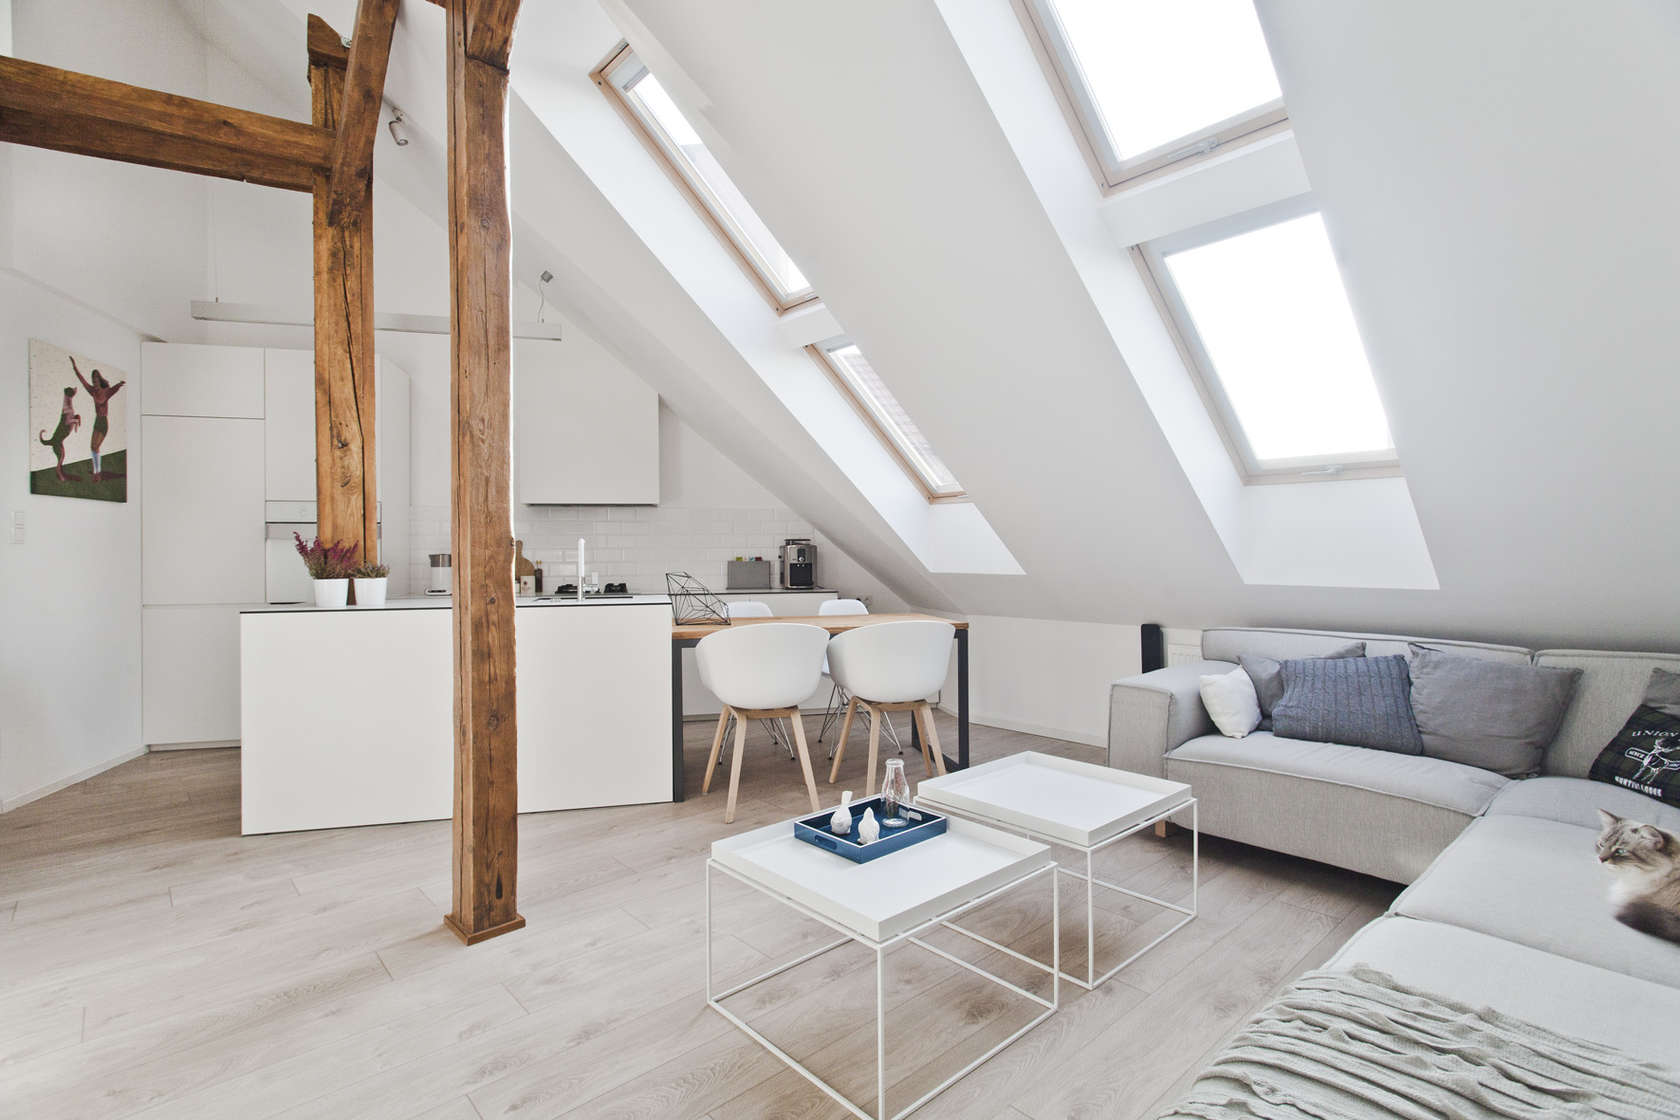 Attic Home - An old attic is transformed into a gorgeous apartment